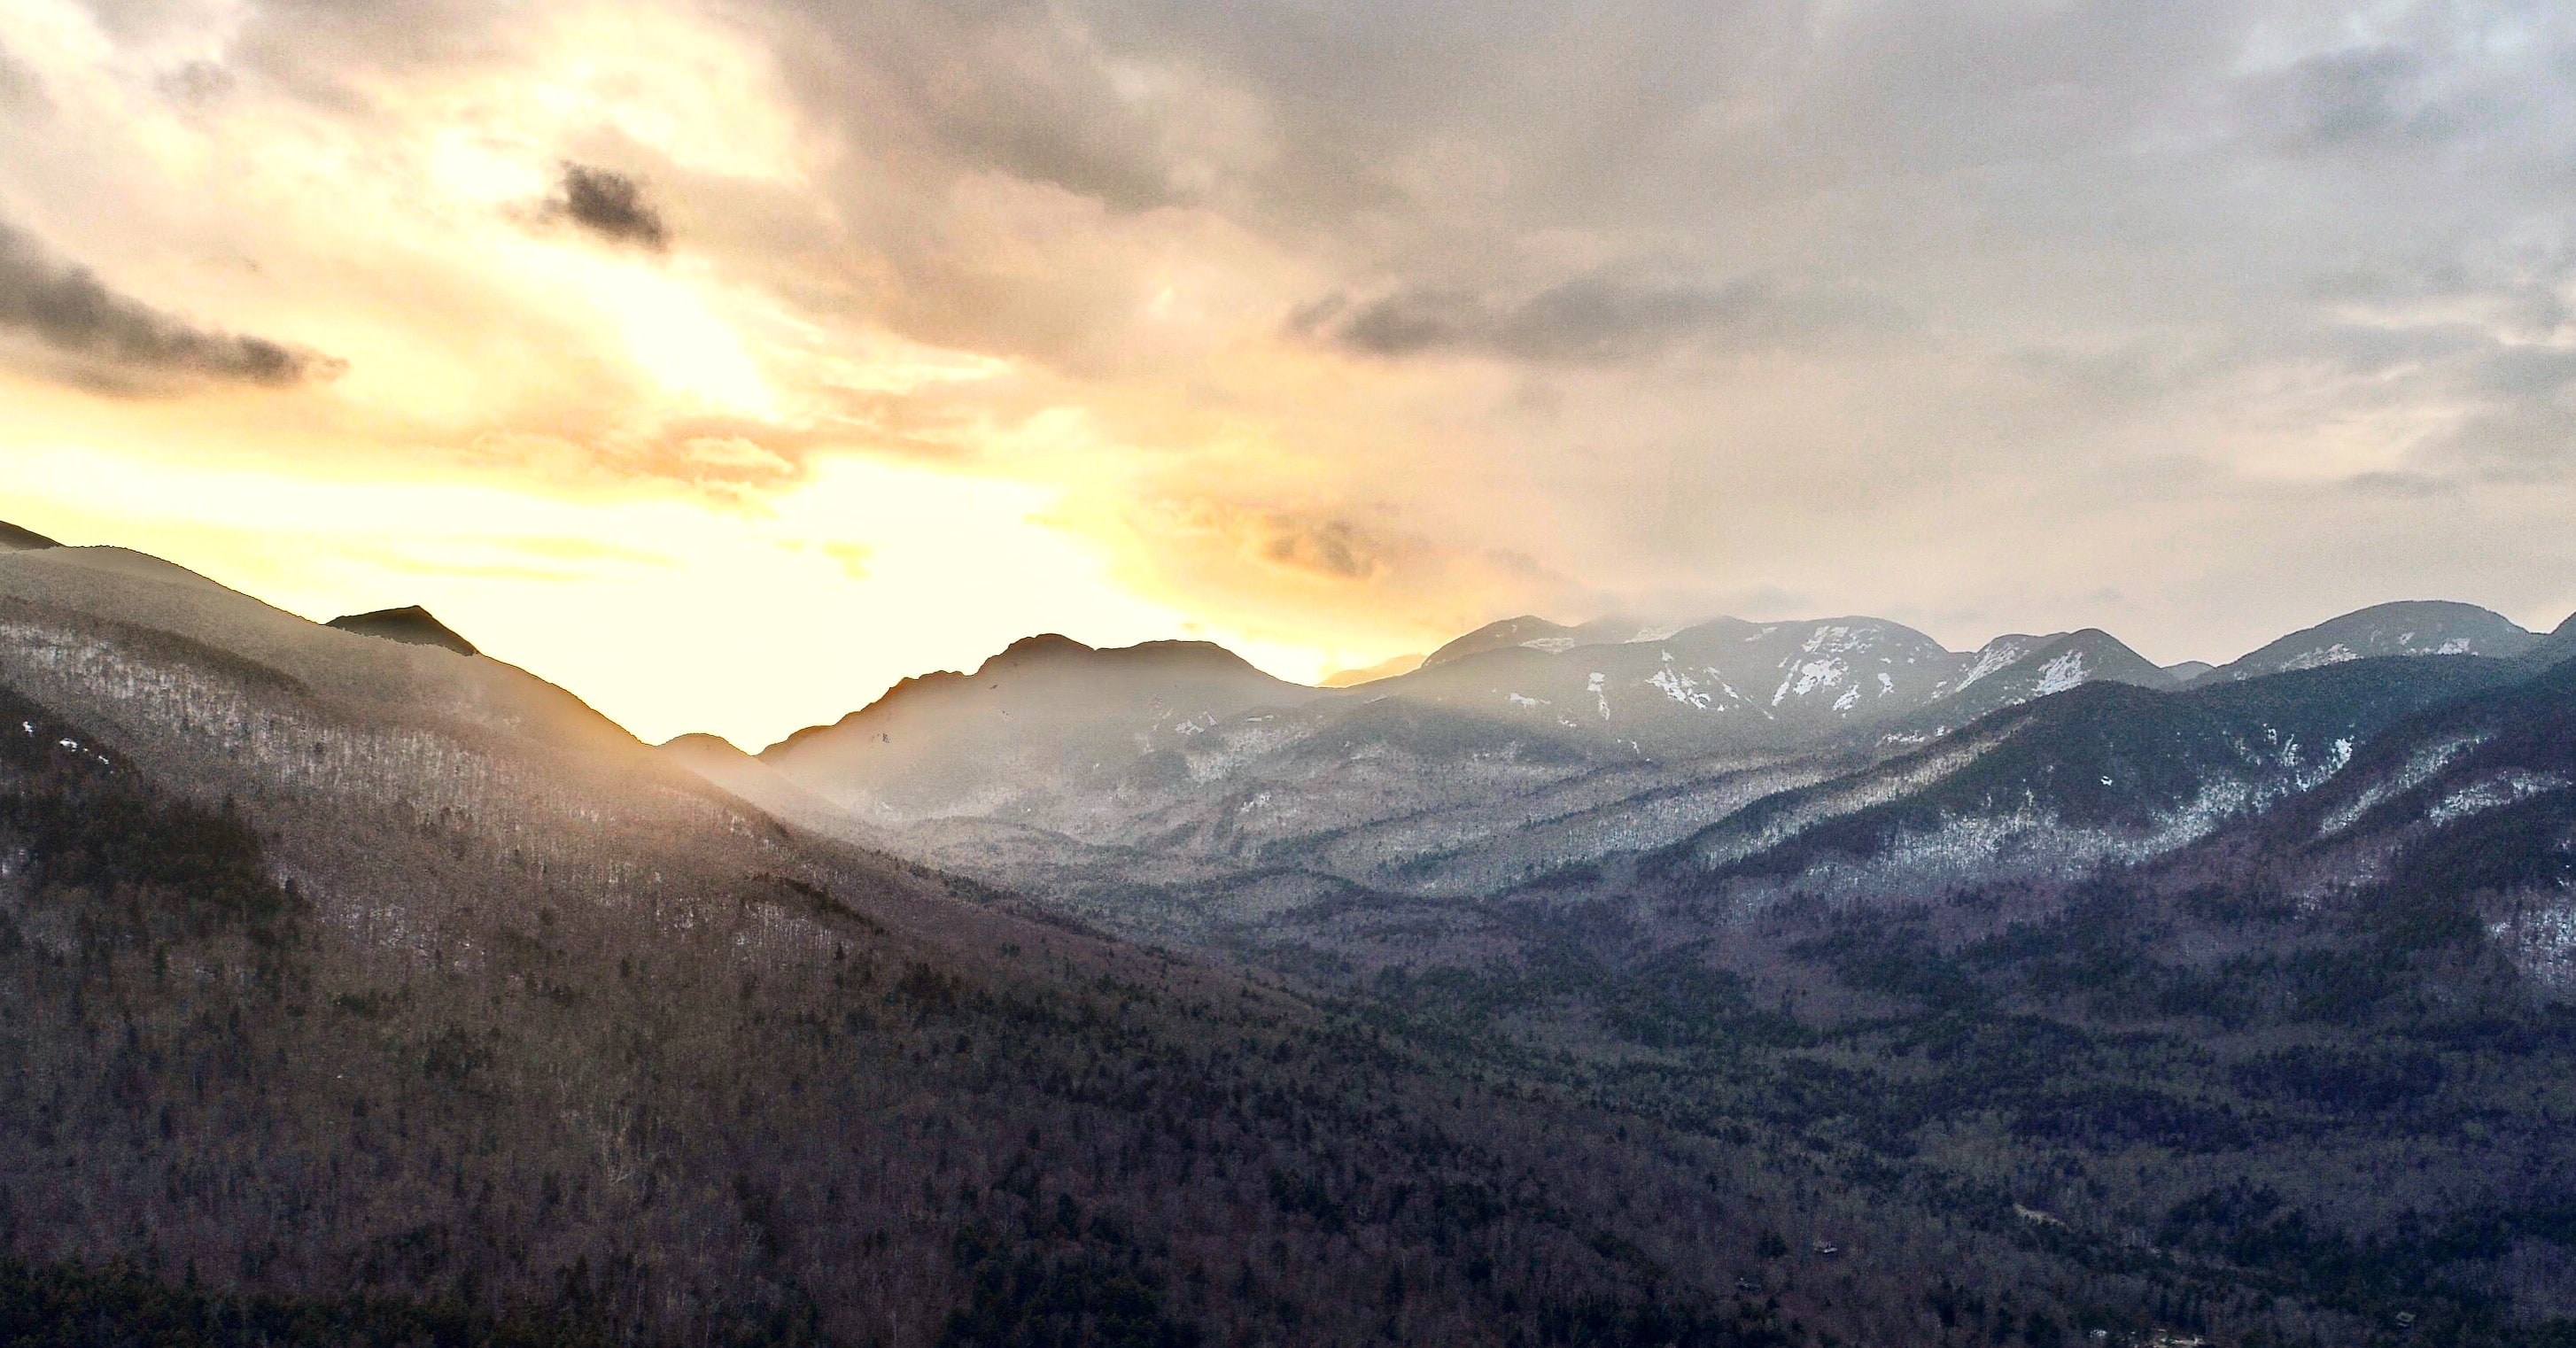 mountain scenery during sunrise